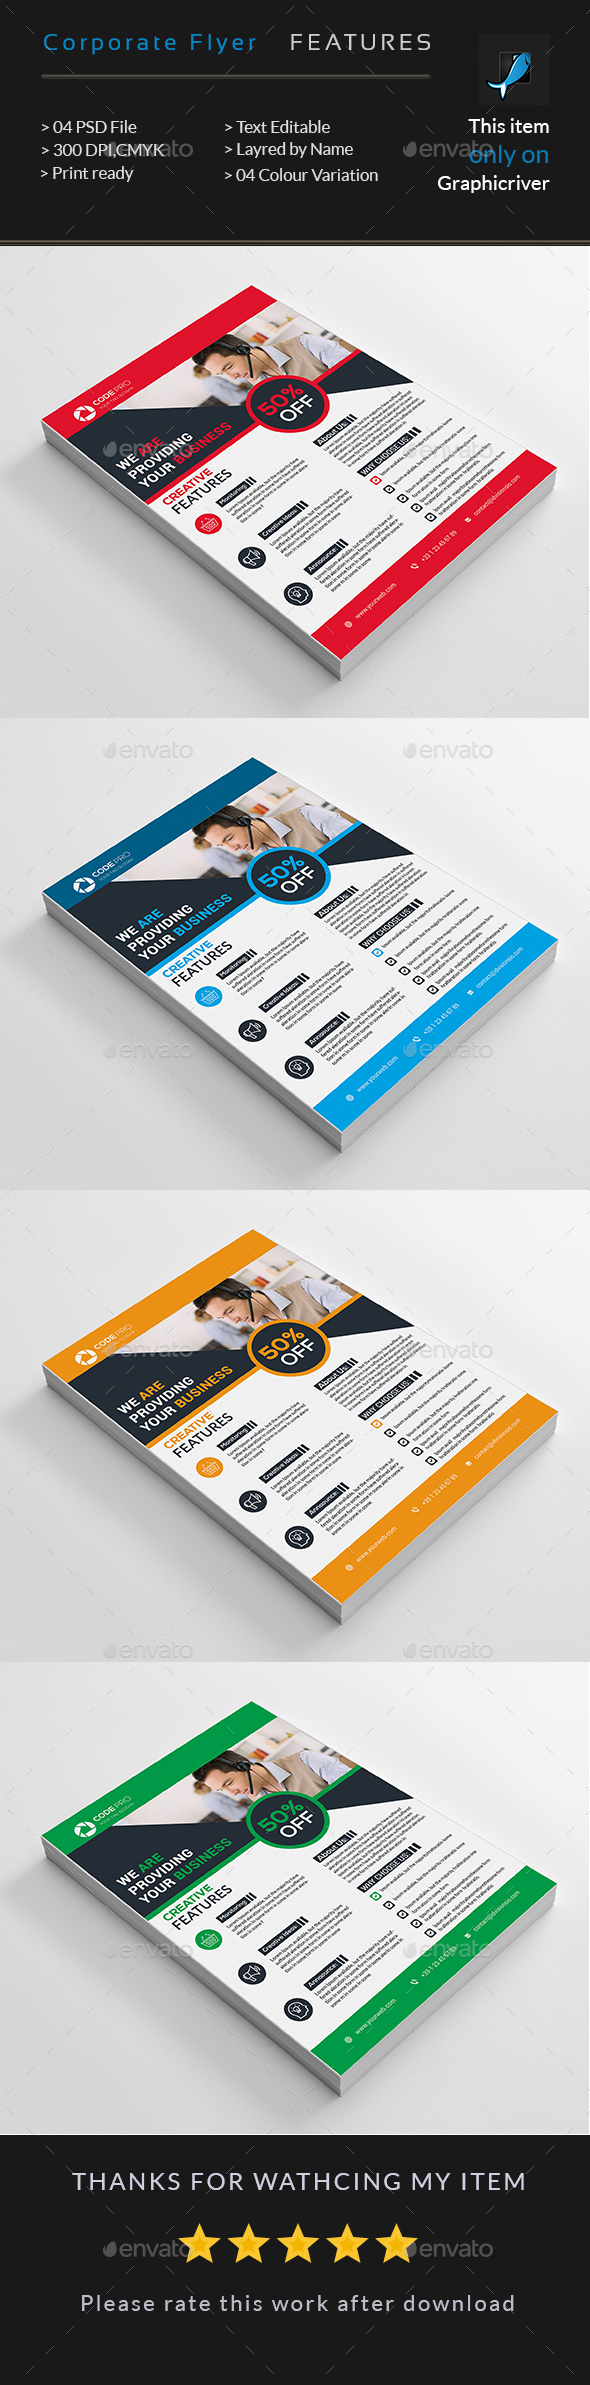 Corporate Business Flyer Business Flyer Flyer Corporate Business